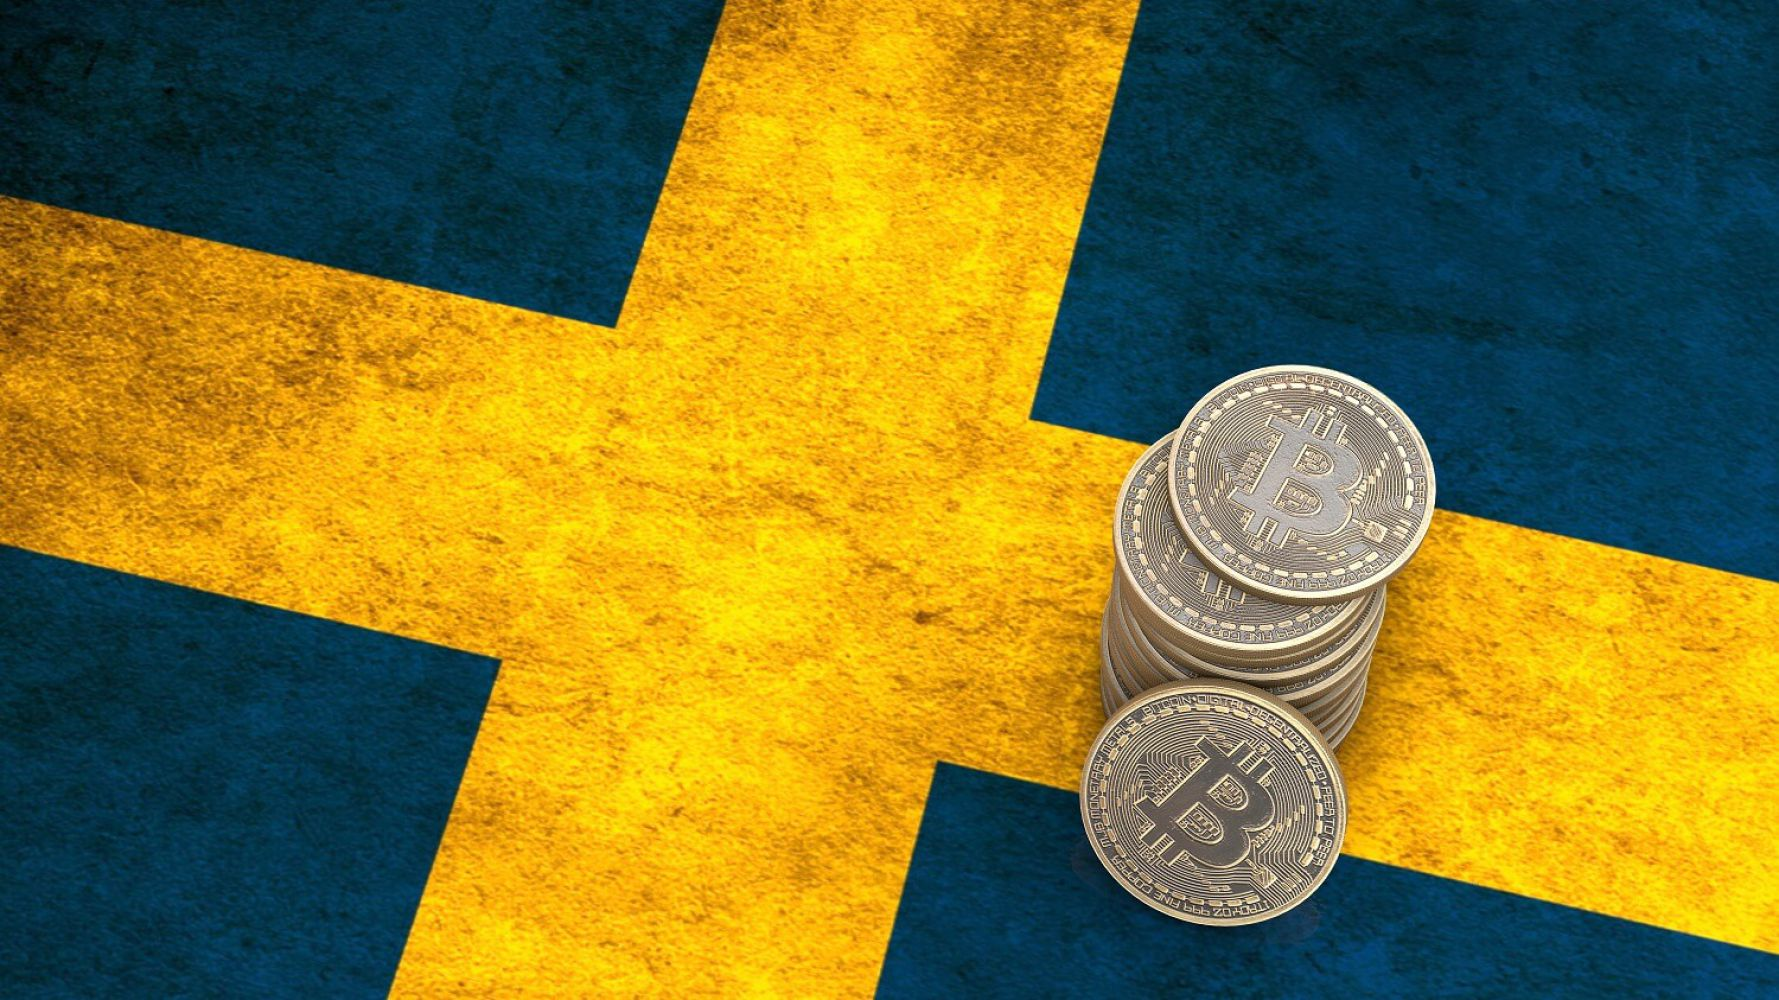 The Swedes are getting ready for the digital money revolution